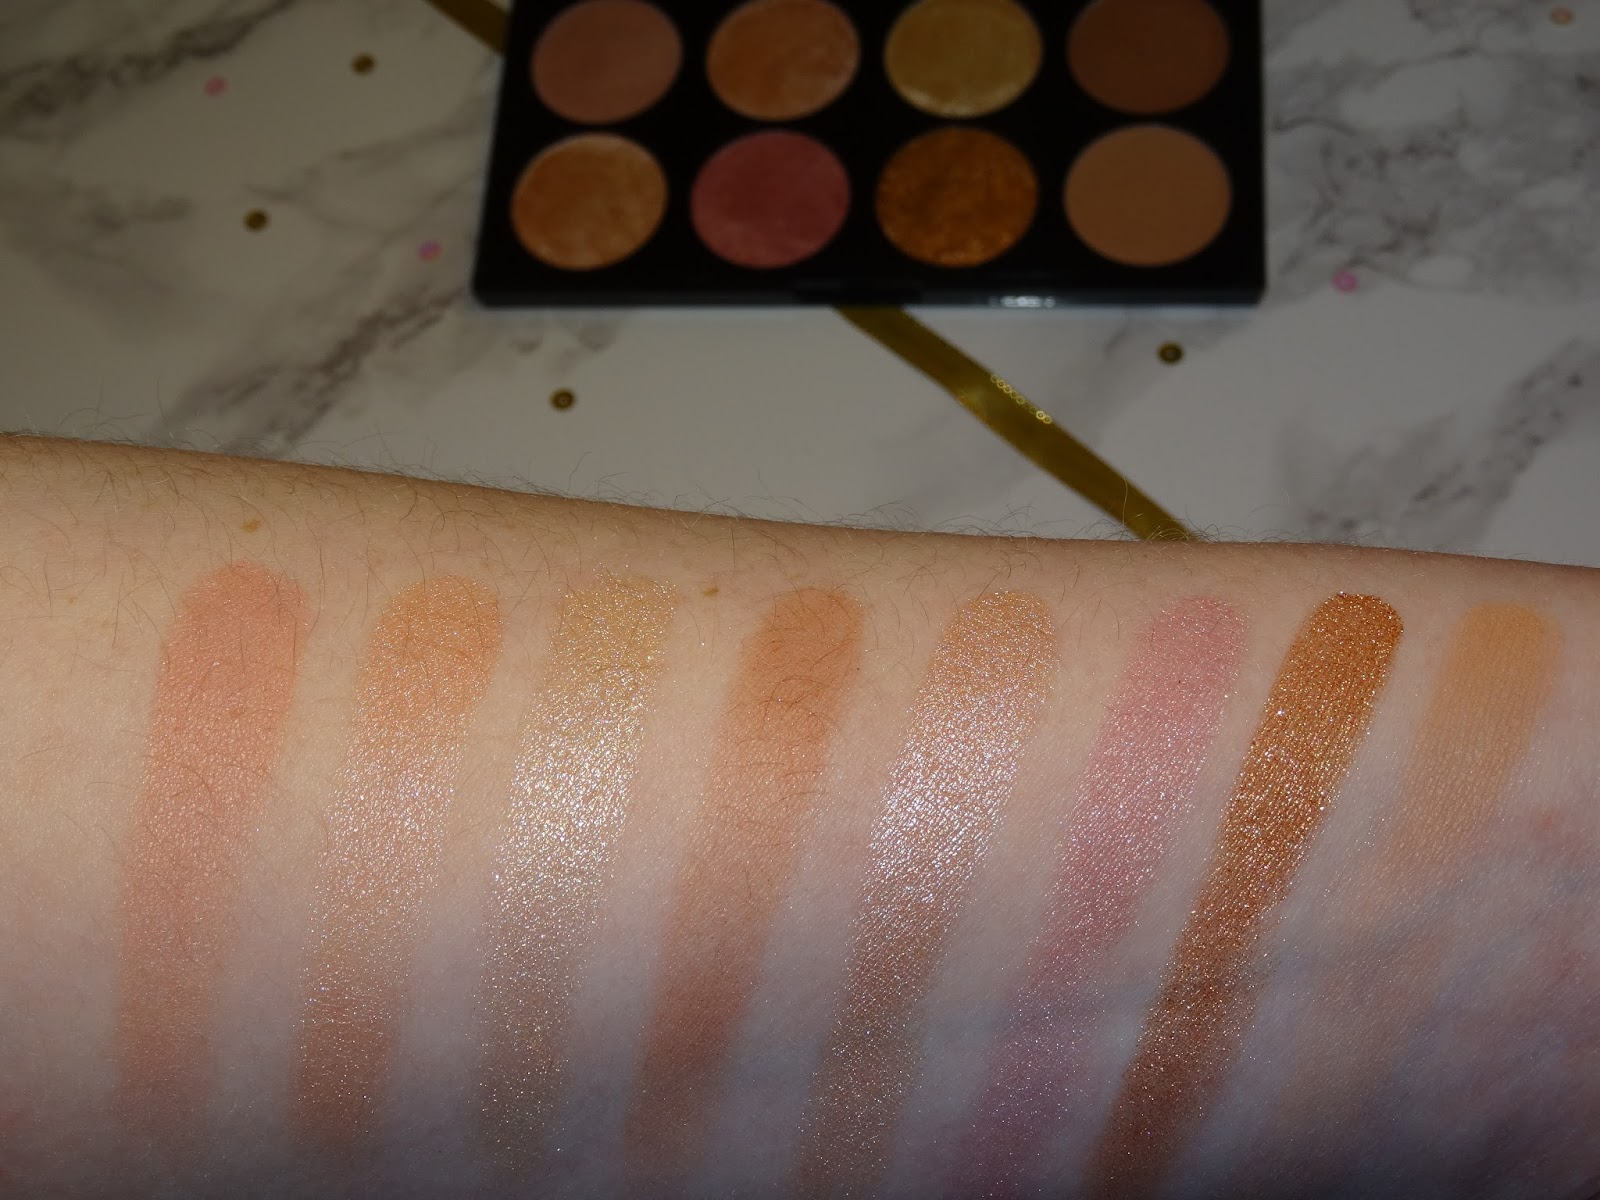 Makeup Revolution Golden Sugar 2 Ultra Blush Palette Review and Swatches